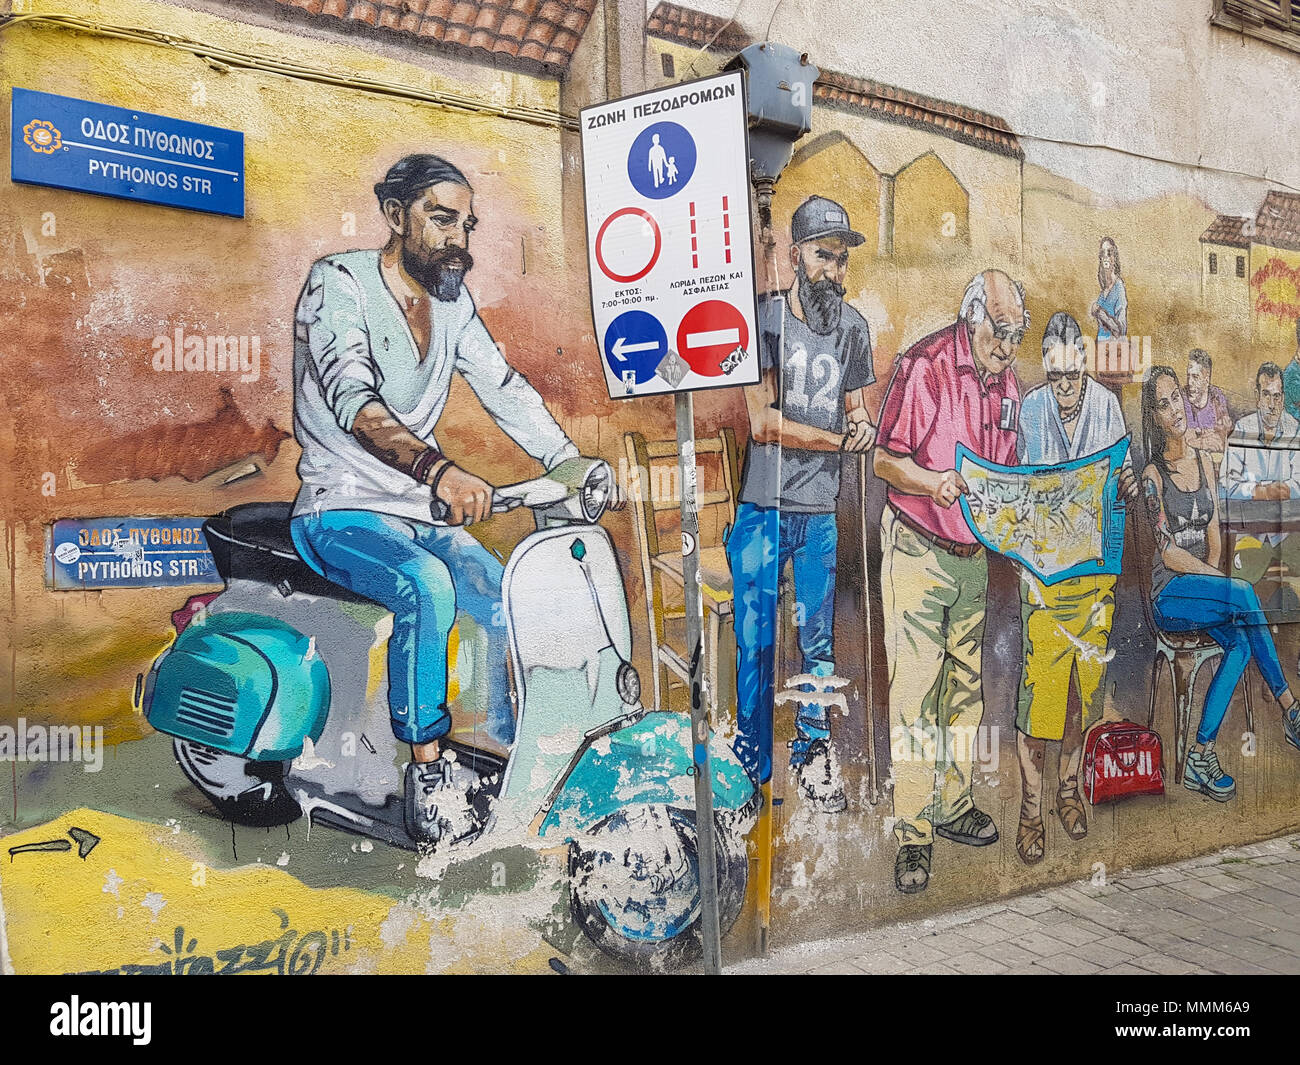 Nicosia, Cyprus - April 26, 2018: Beautiful Street Art on Pythonos Street in the Old Nicosia city centre. The old city of Nicosia within the Venetian  - Stock Image